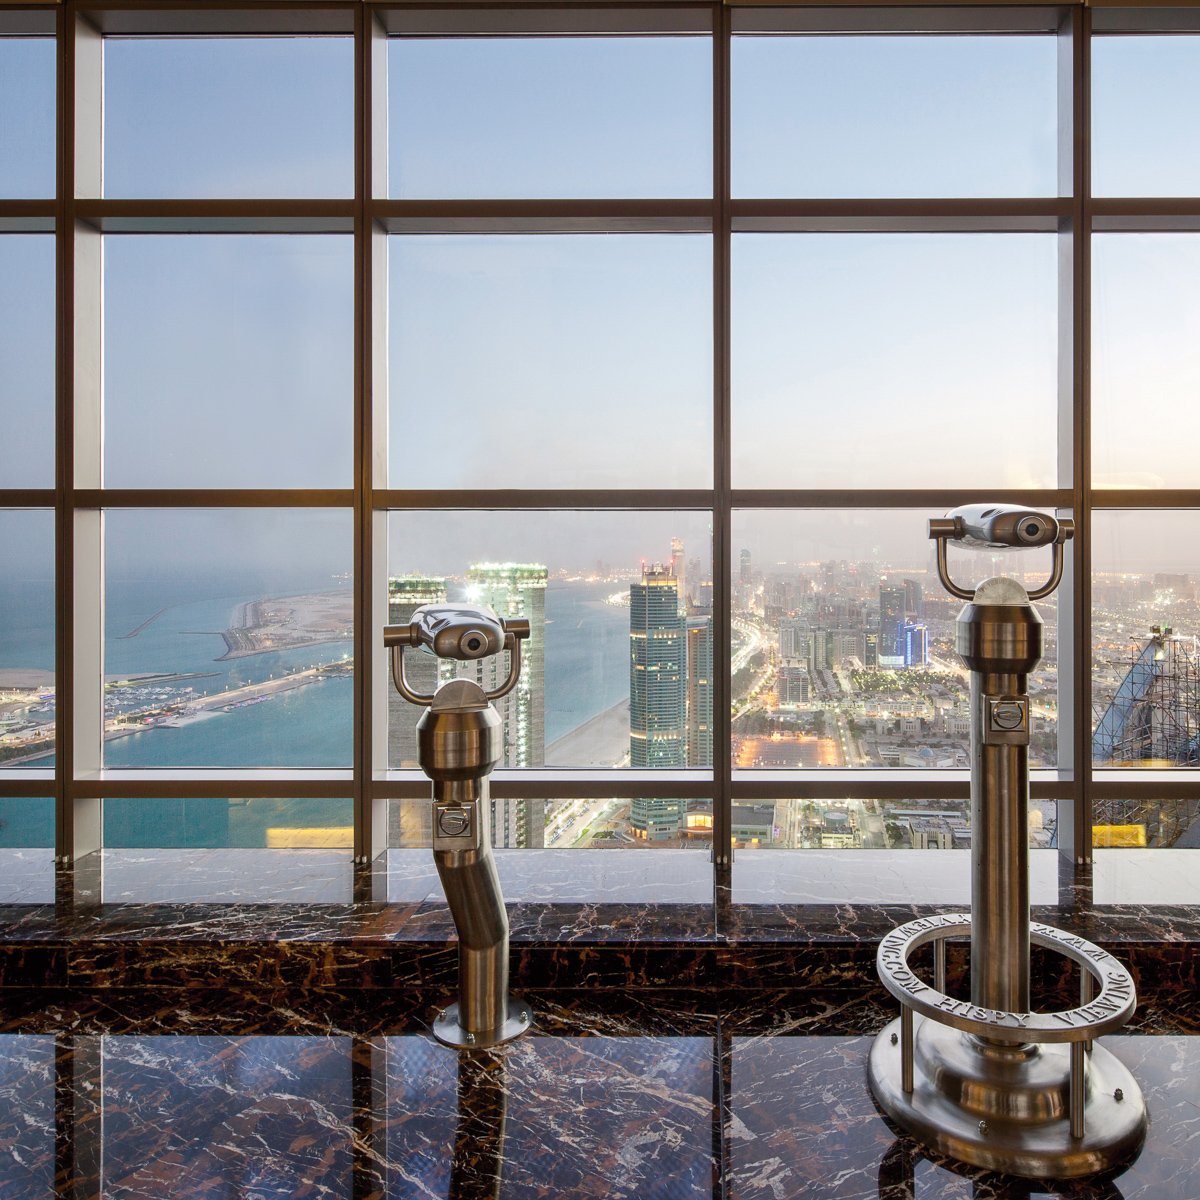 Jumeirah at Etihad Towers - Observation Deck at 300 - City View